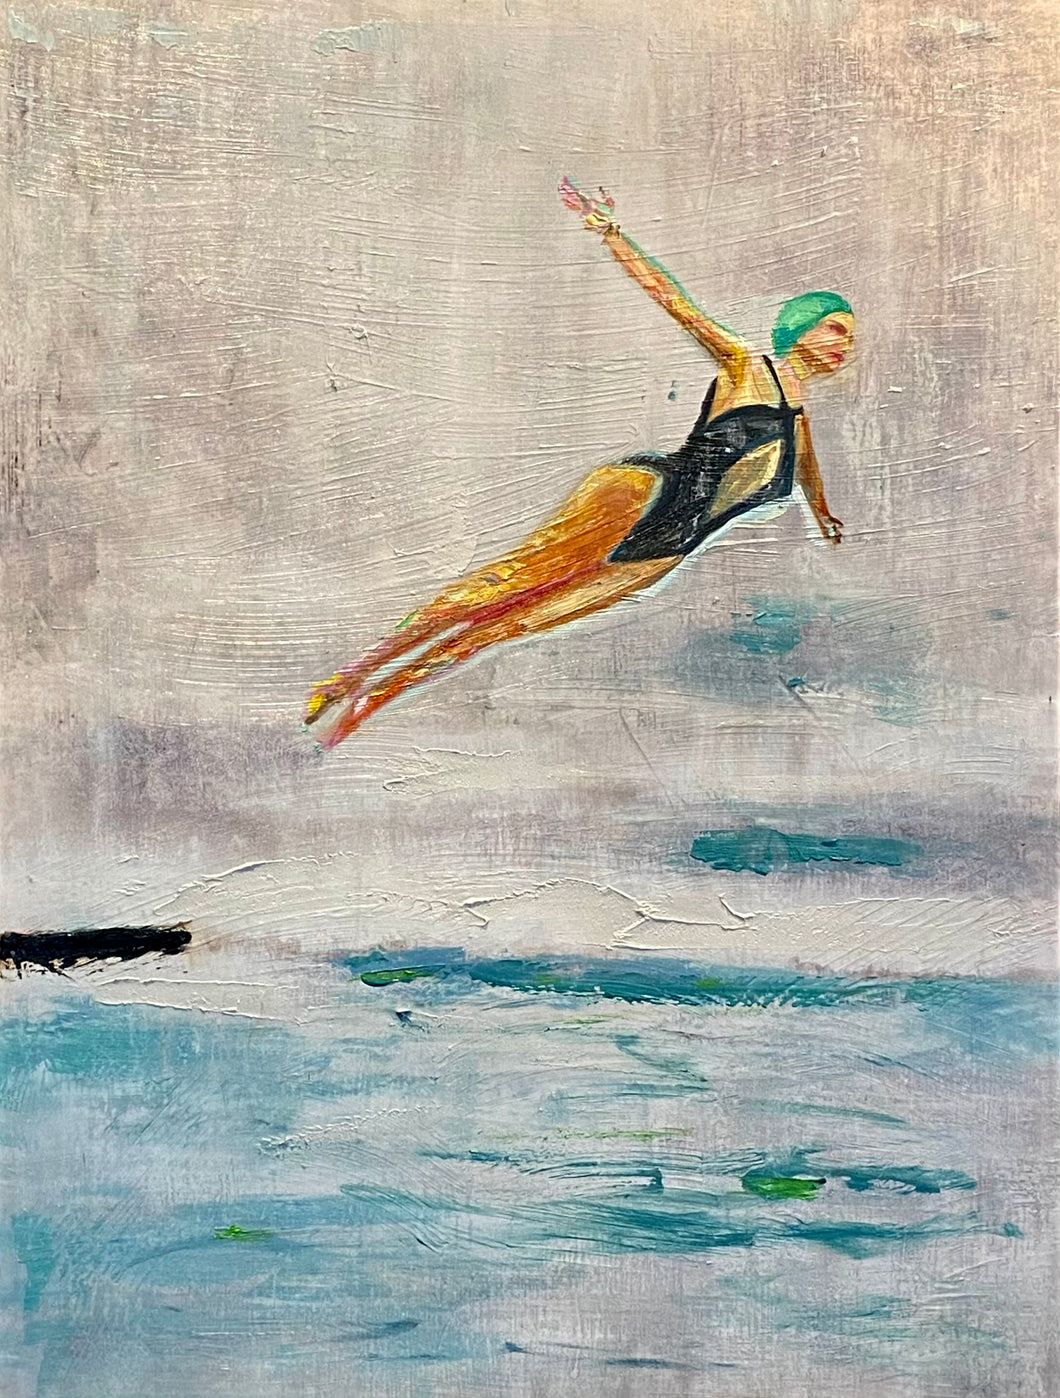 Original Oil Painting - Swan Dive